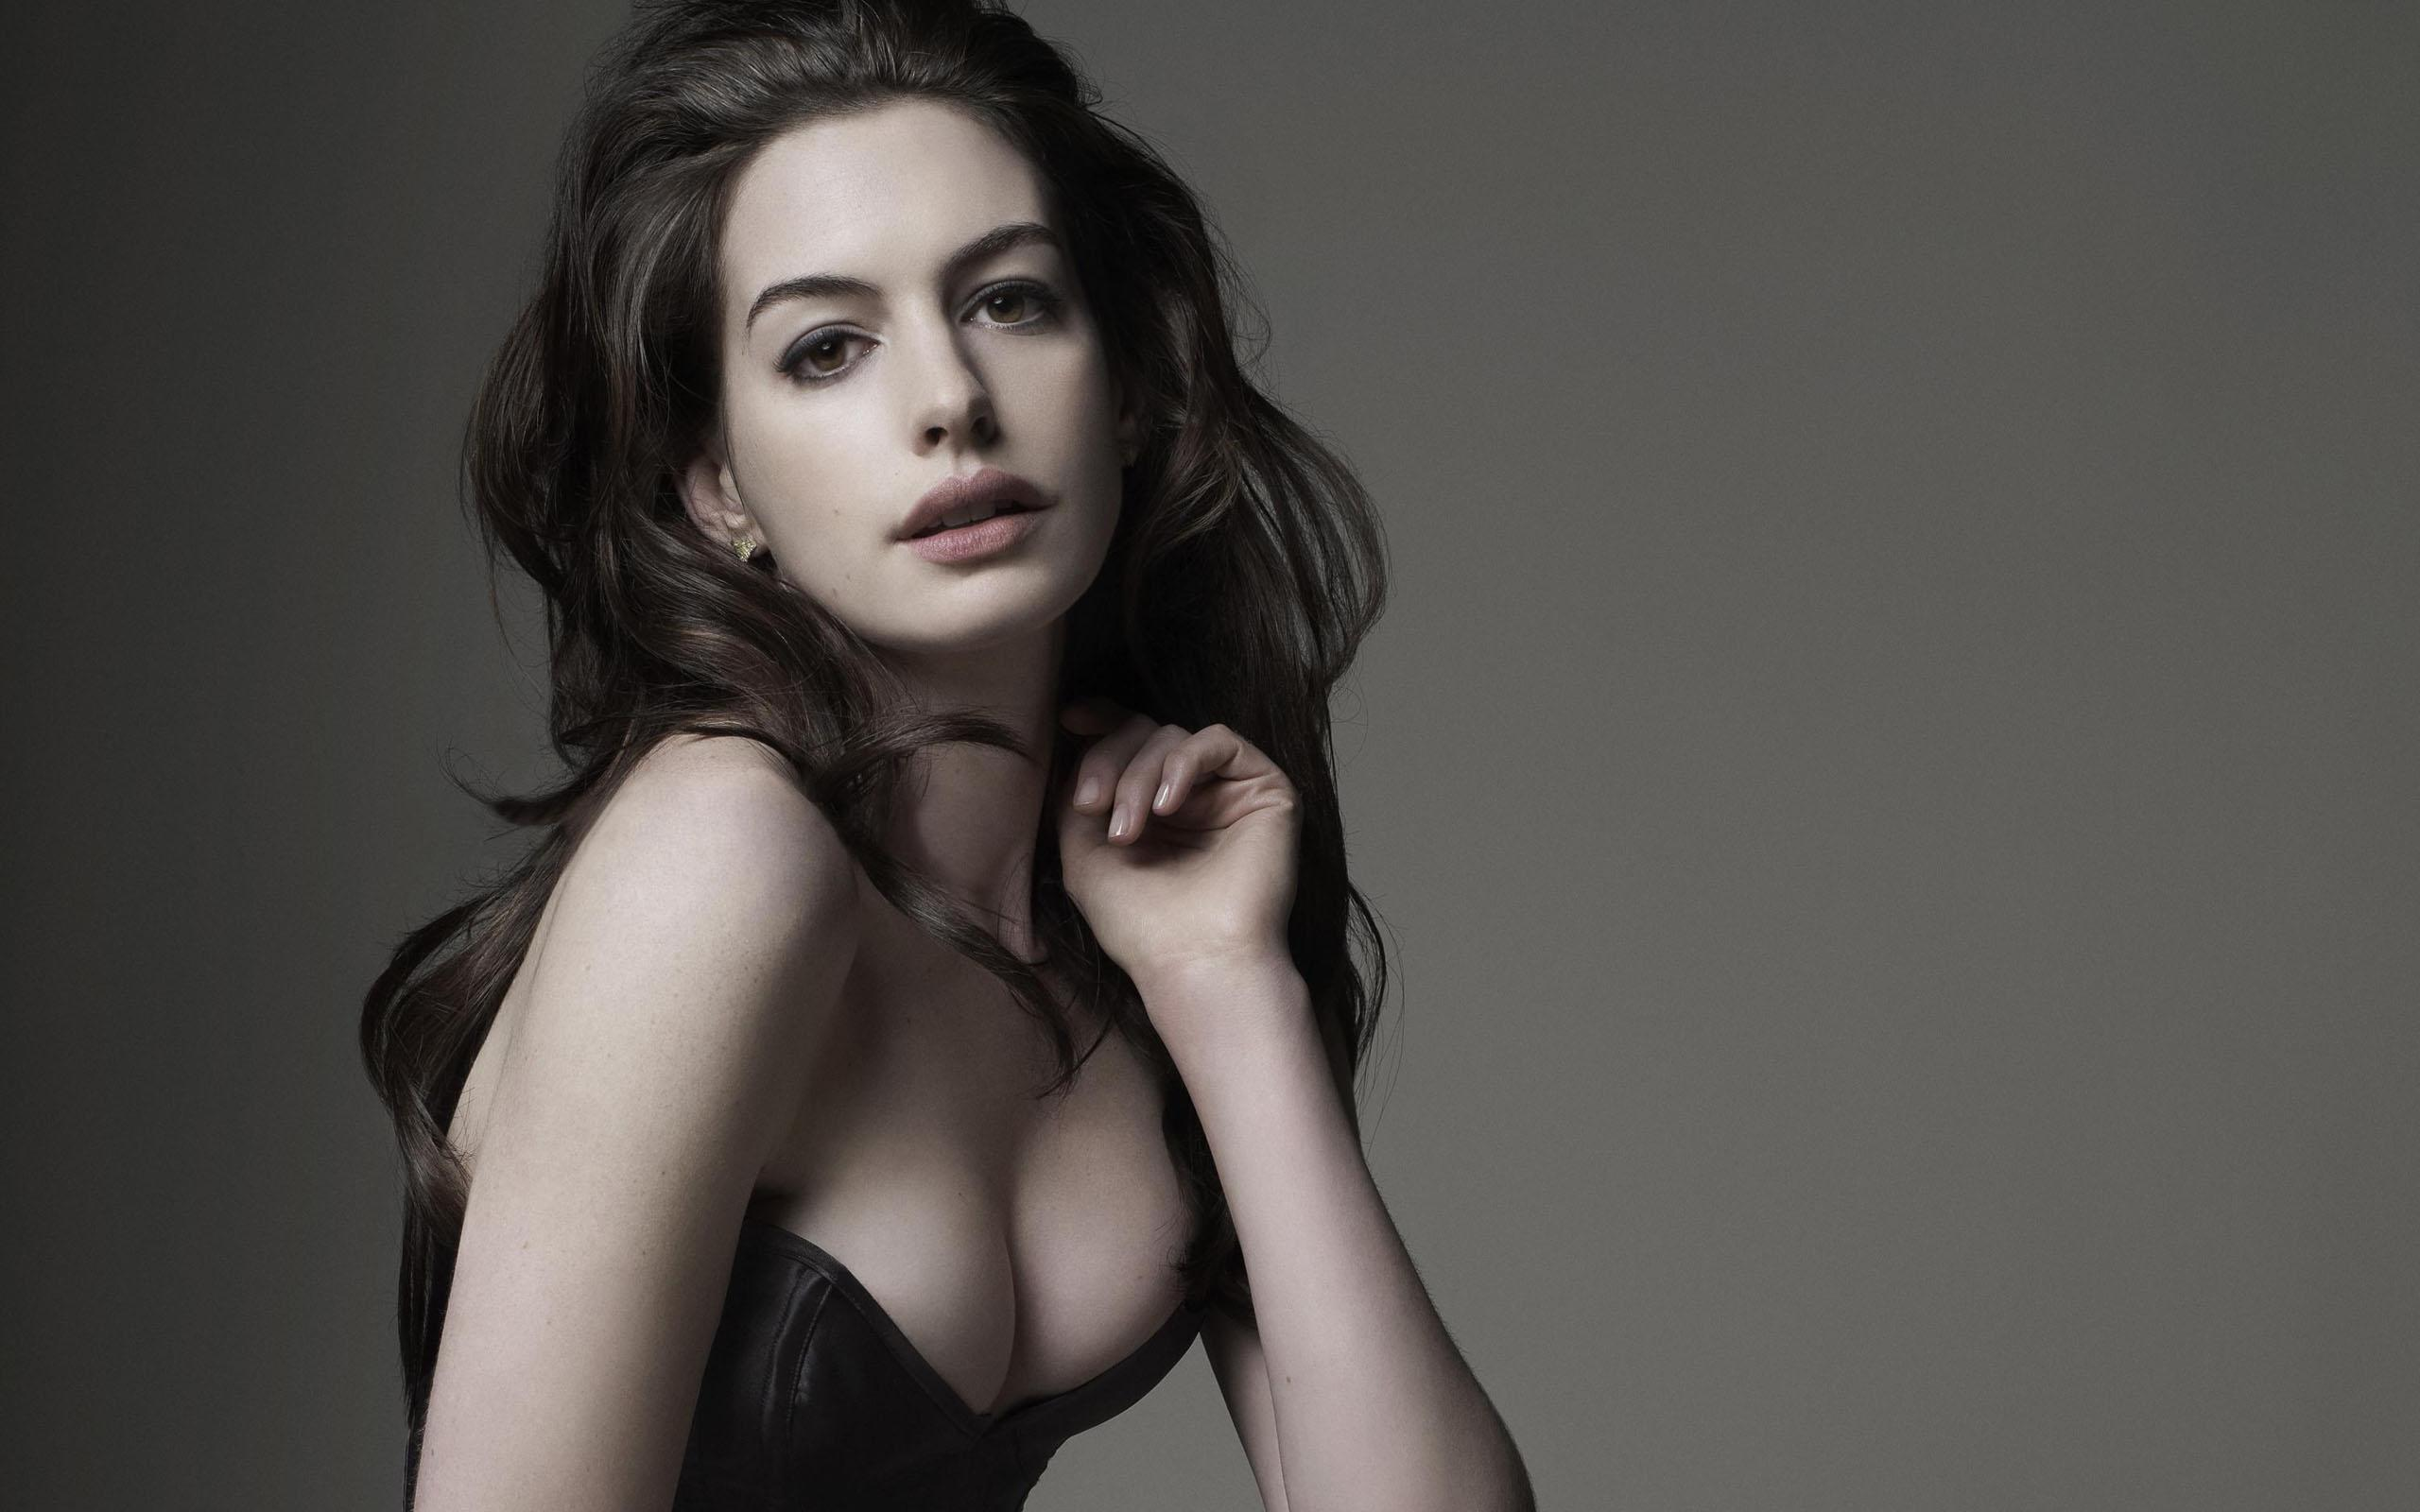 Related wallpapers. hollywood model Anne Hathaway hd